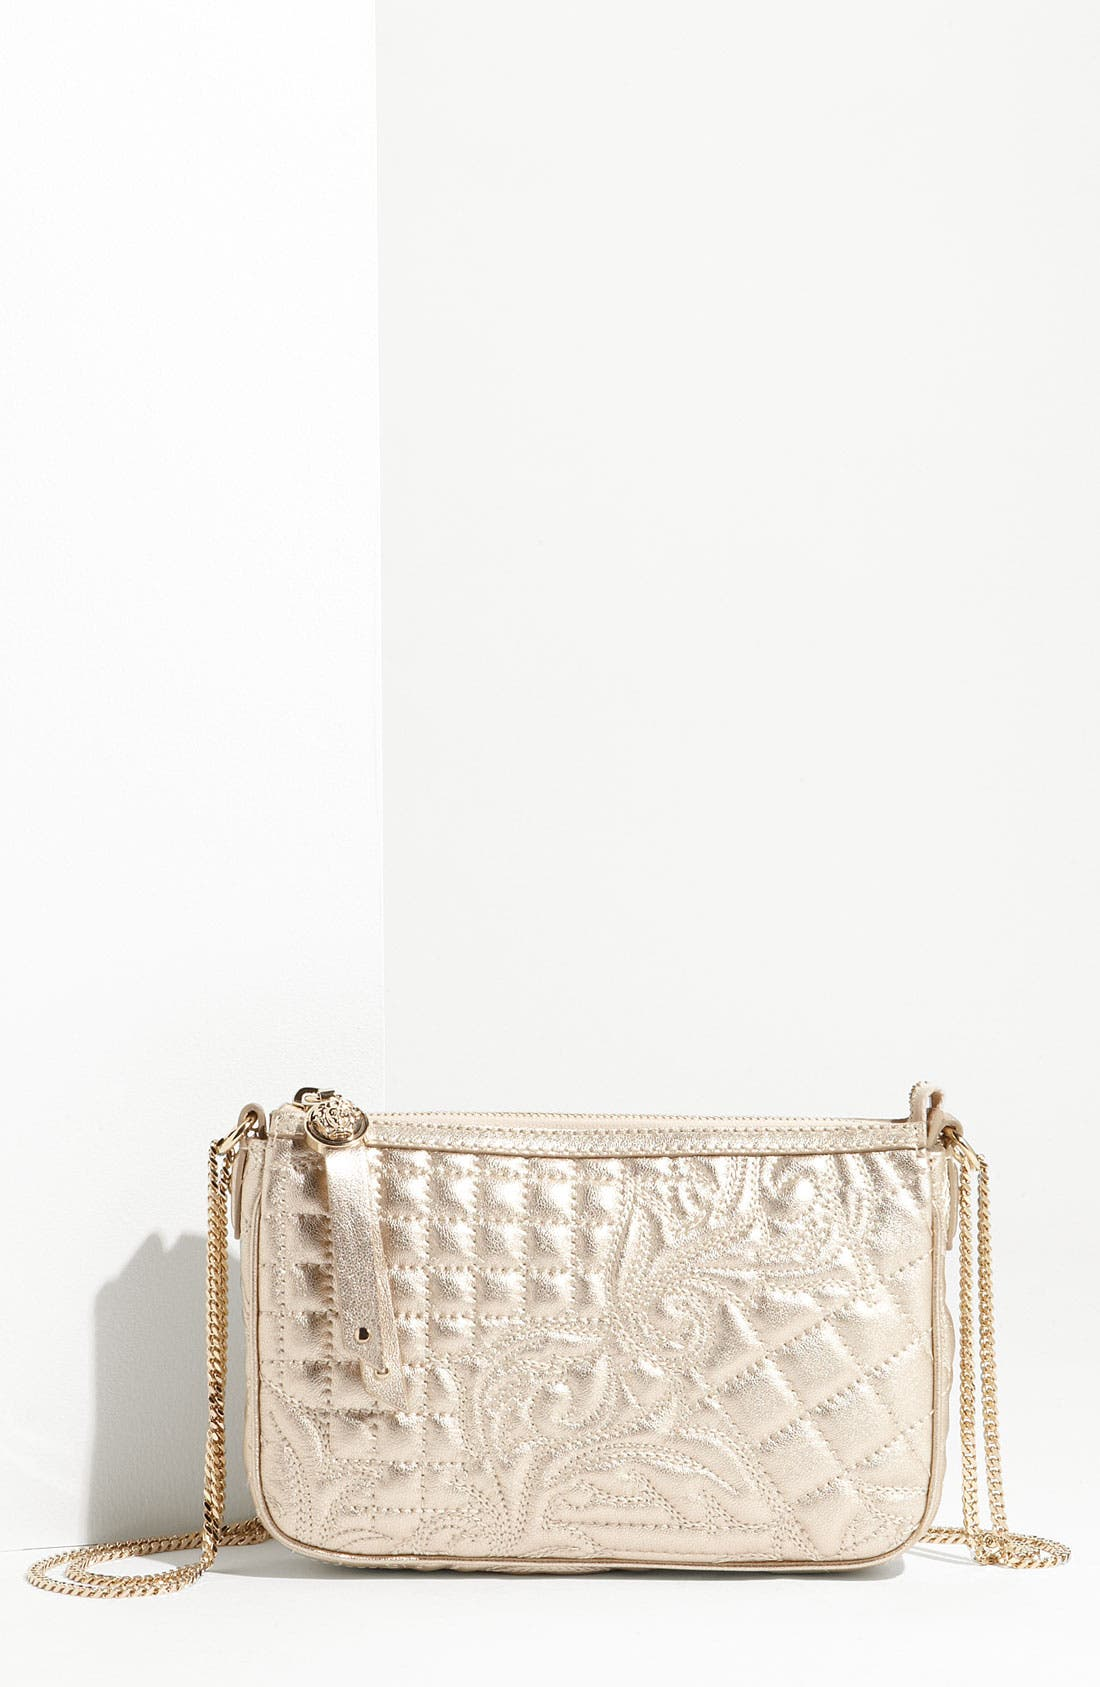 Main Image - Versace 'Vanitas' Embroidered Leather Crossbody Bag